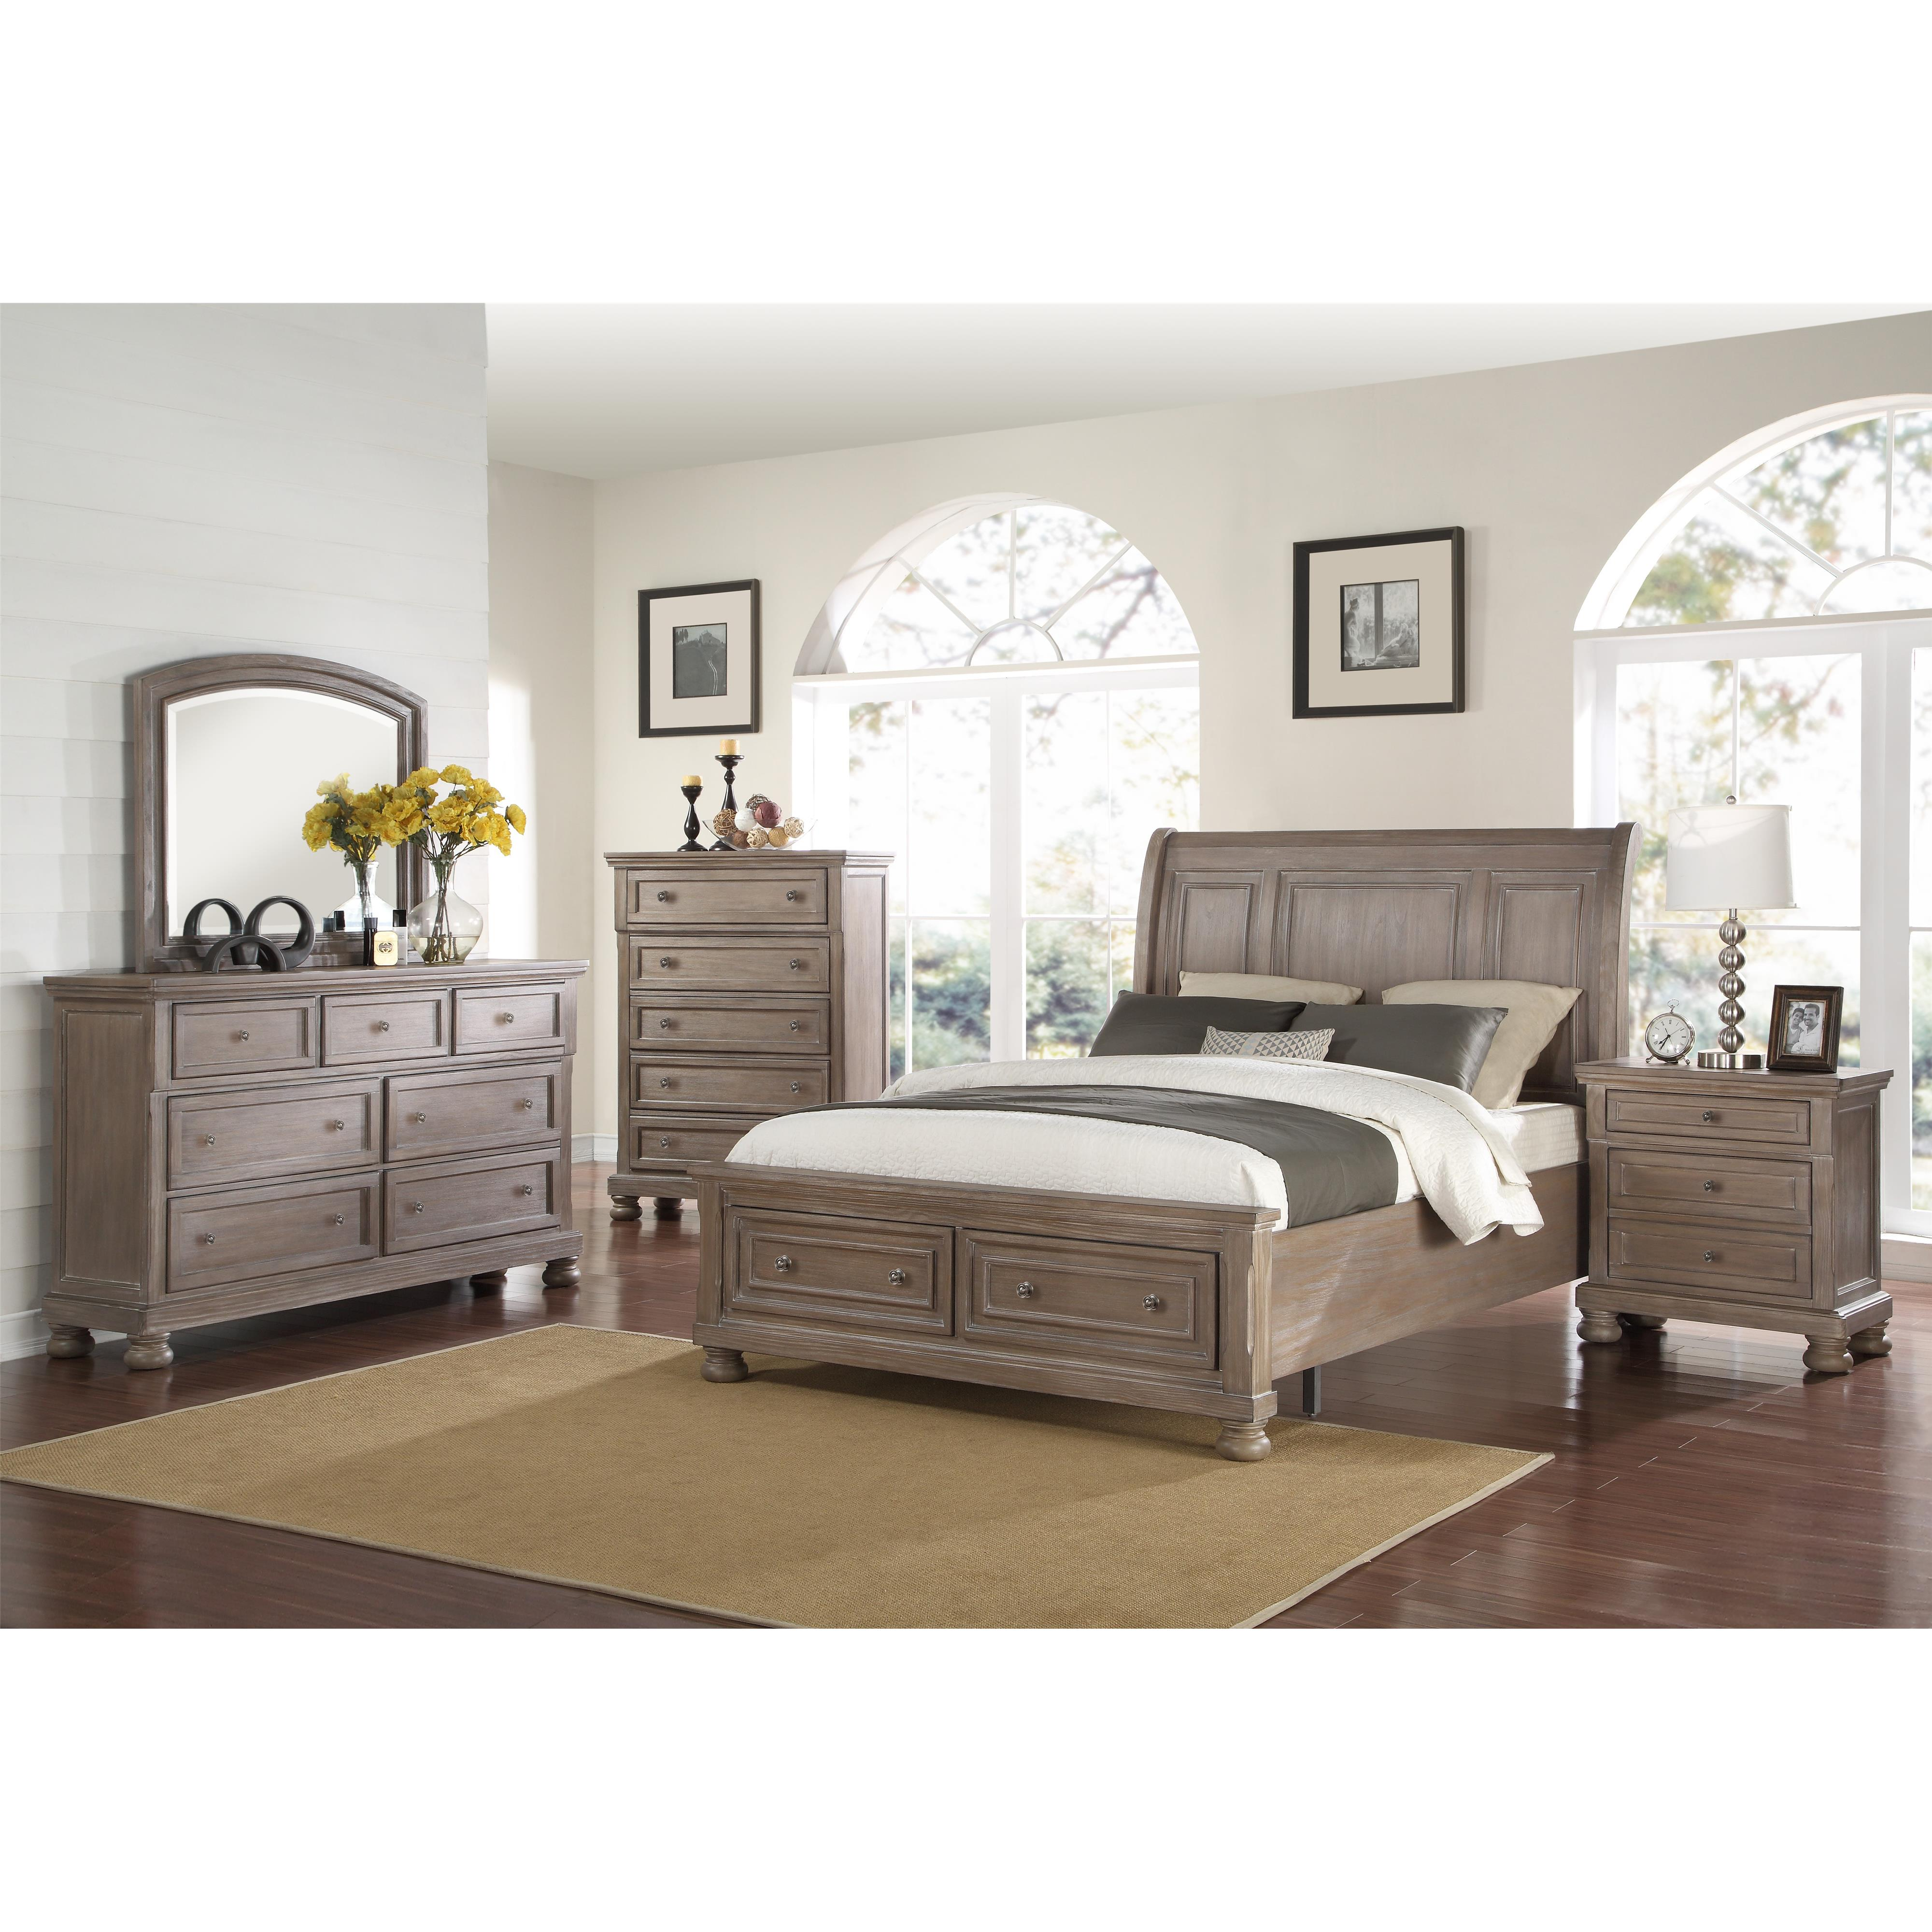 Allegra King Bedroom Group by New Classic at Carolina Direct